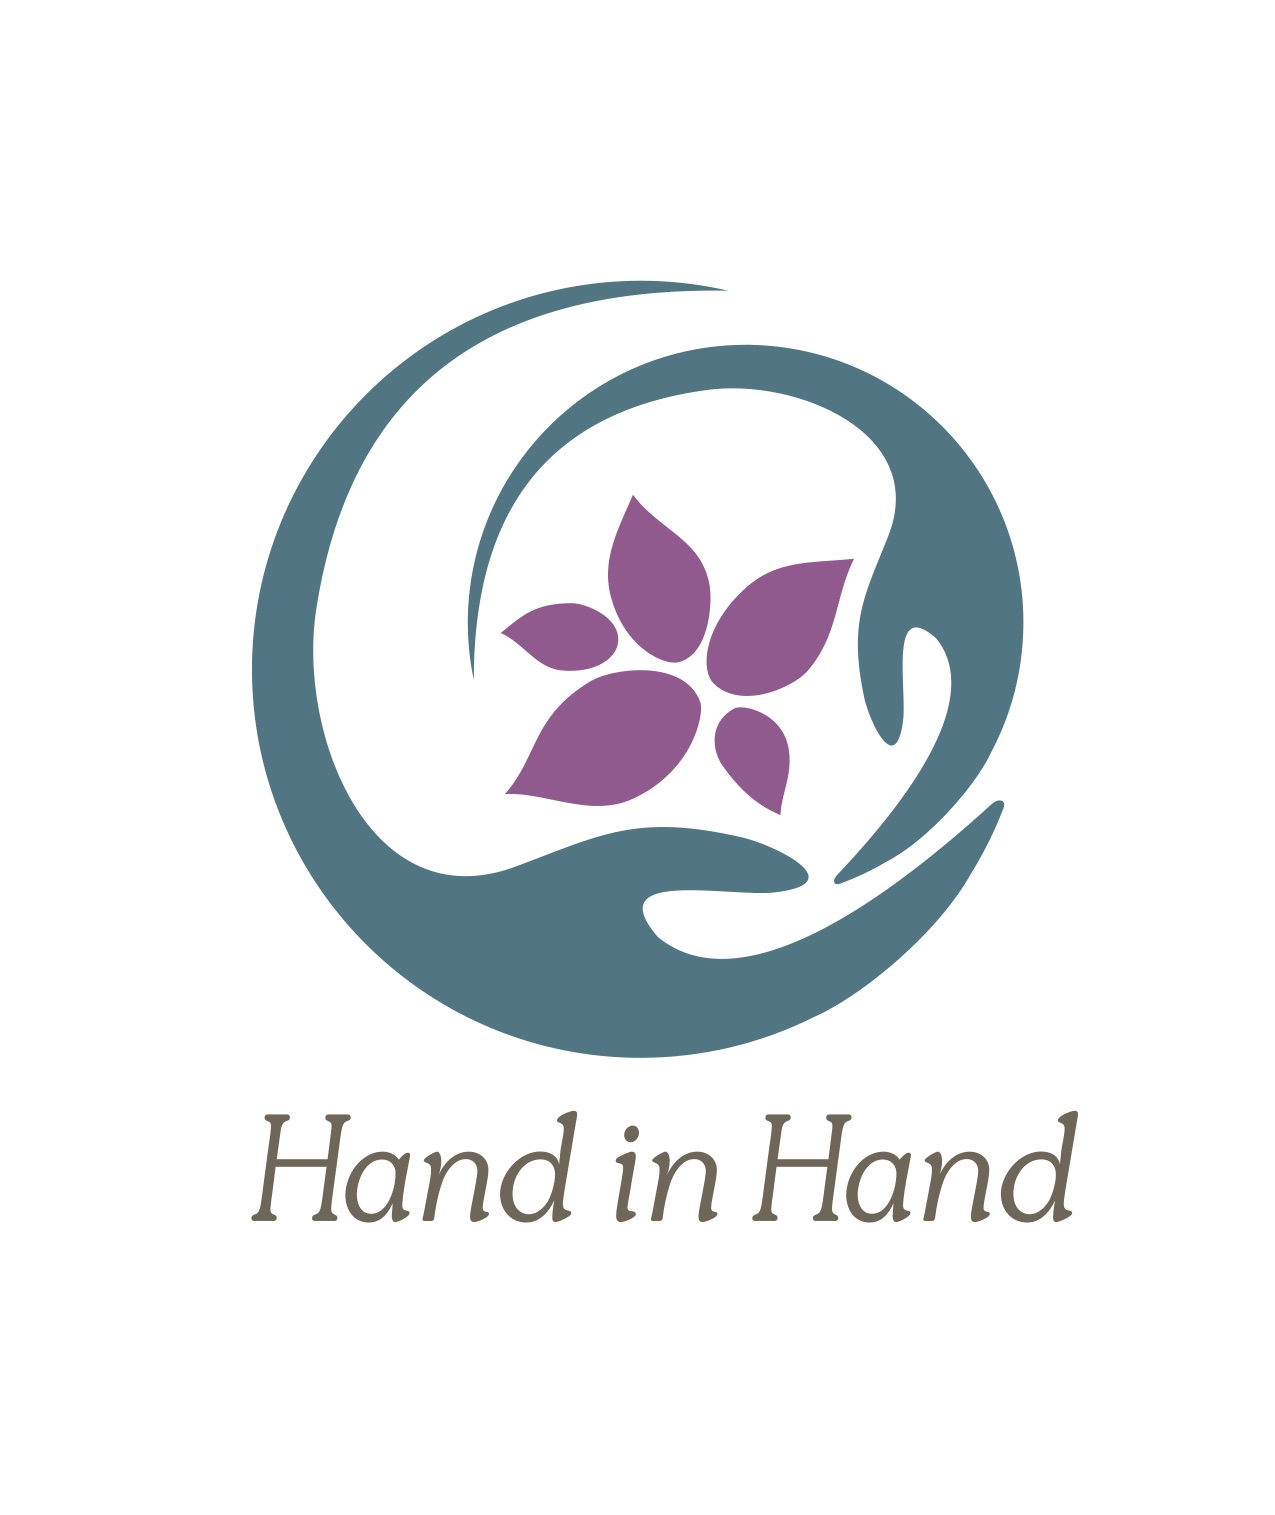 Hand in Hand is our Peer Support Program and it includes Recovery Coaching , Telephone Recovery Support, & Group Meetings